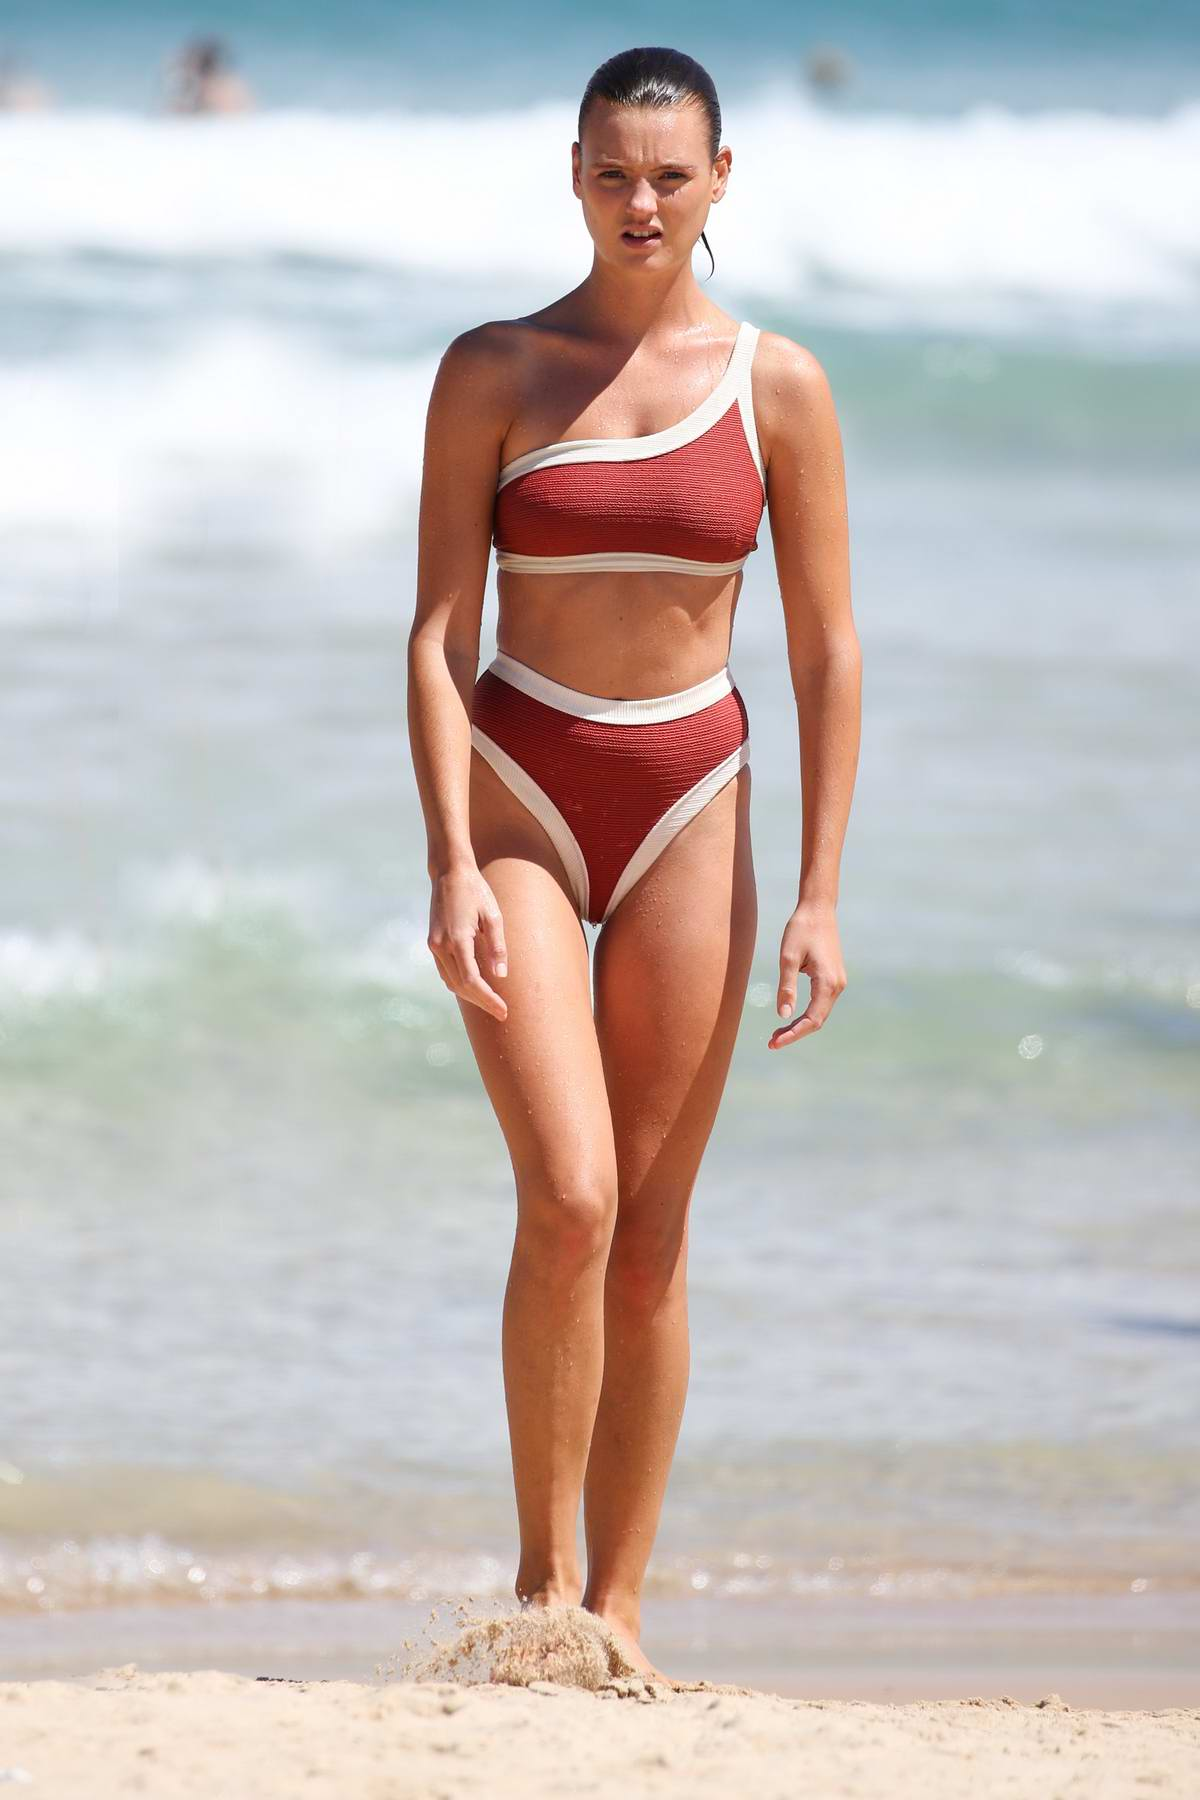 Montana Cox wears a red and white bikini while on Bondi Beach in Sydney, Australia